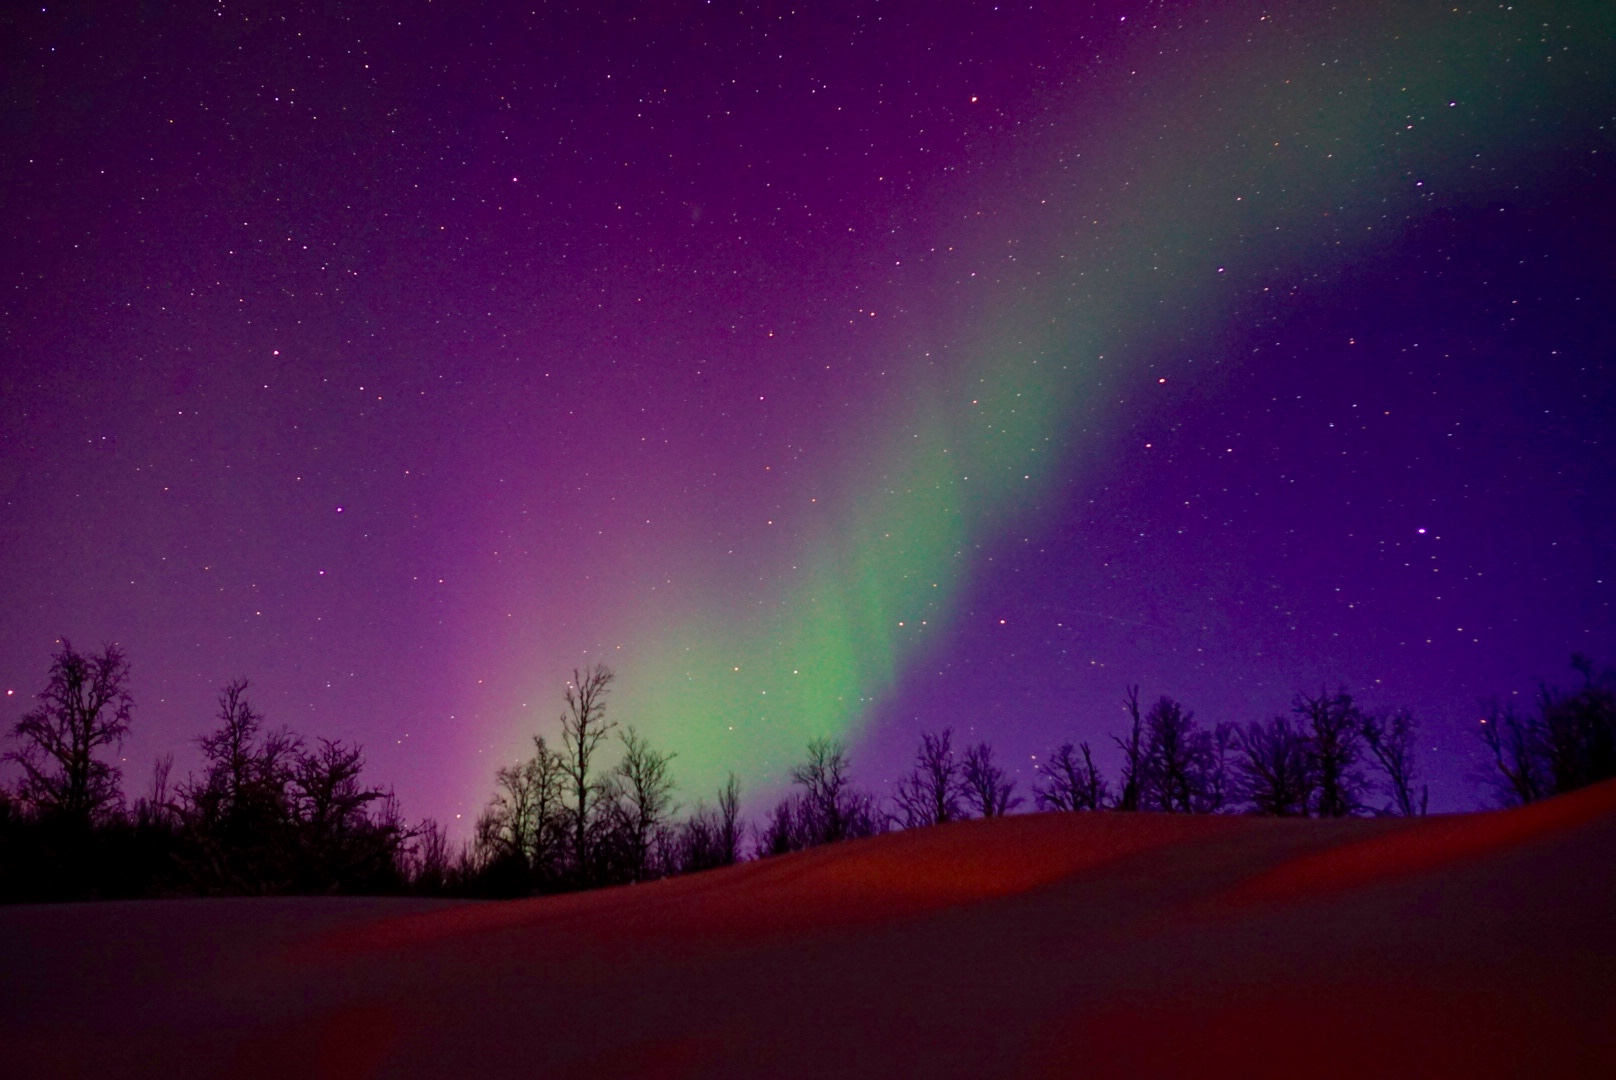 You need to go chasing the Northern Lights